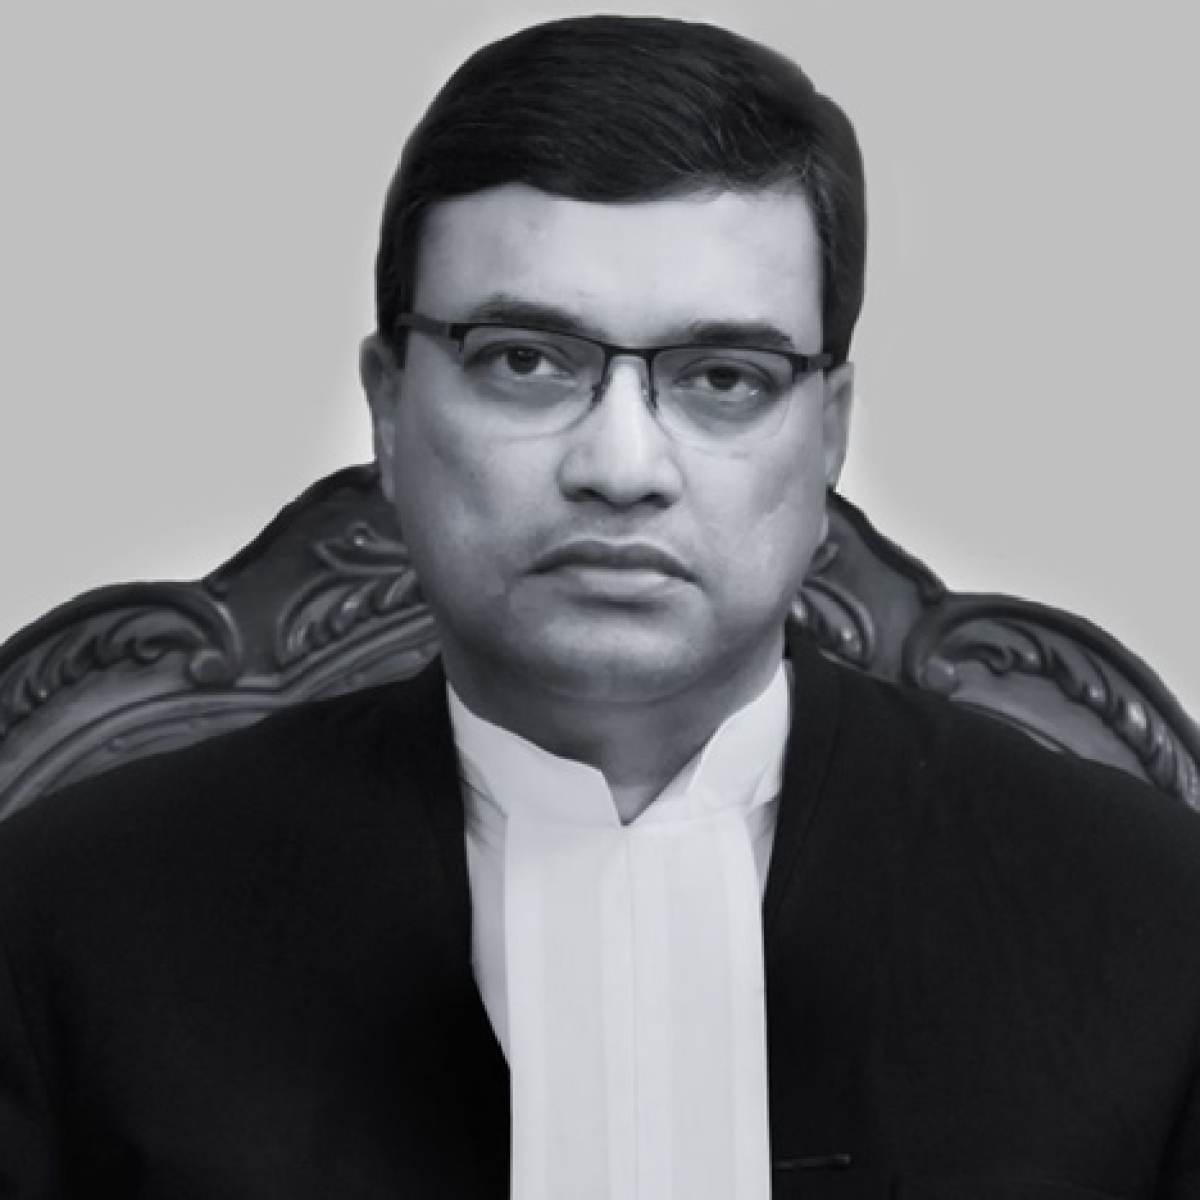 Heckled judge Dipankar Datta  could be blessed by elevation to the Supreme Court